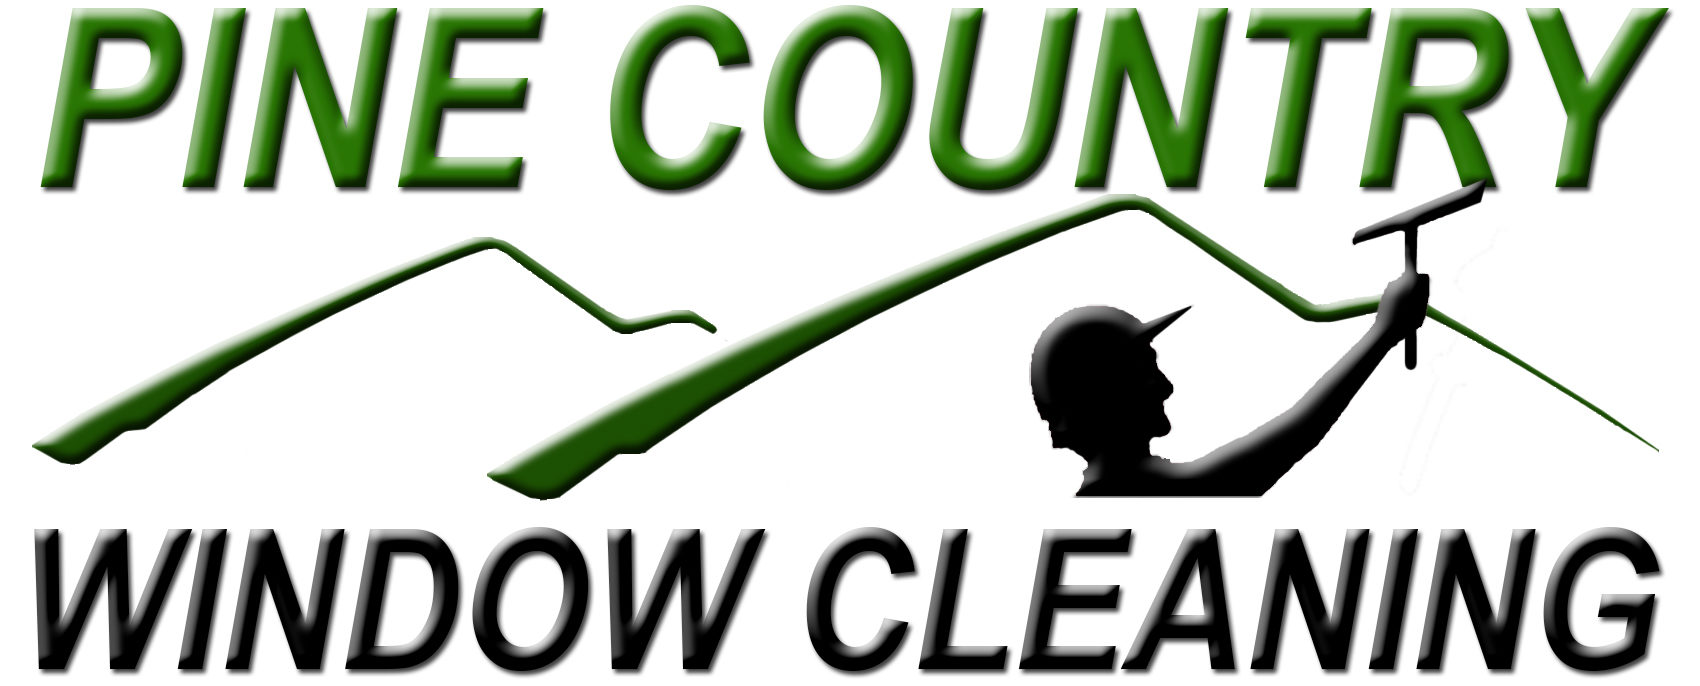 Pine Country Window Cleaning (928) 527-0671